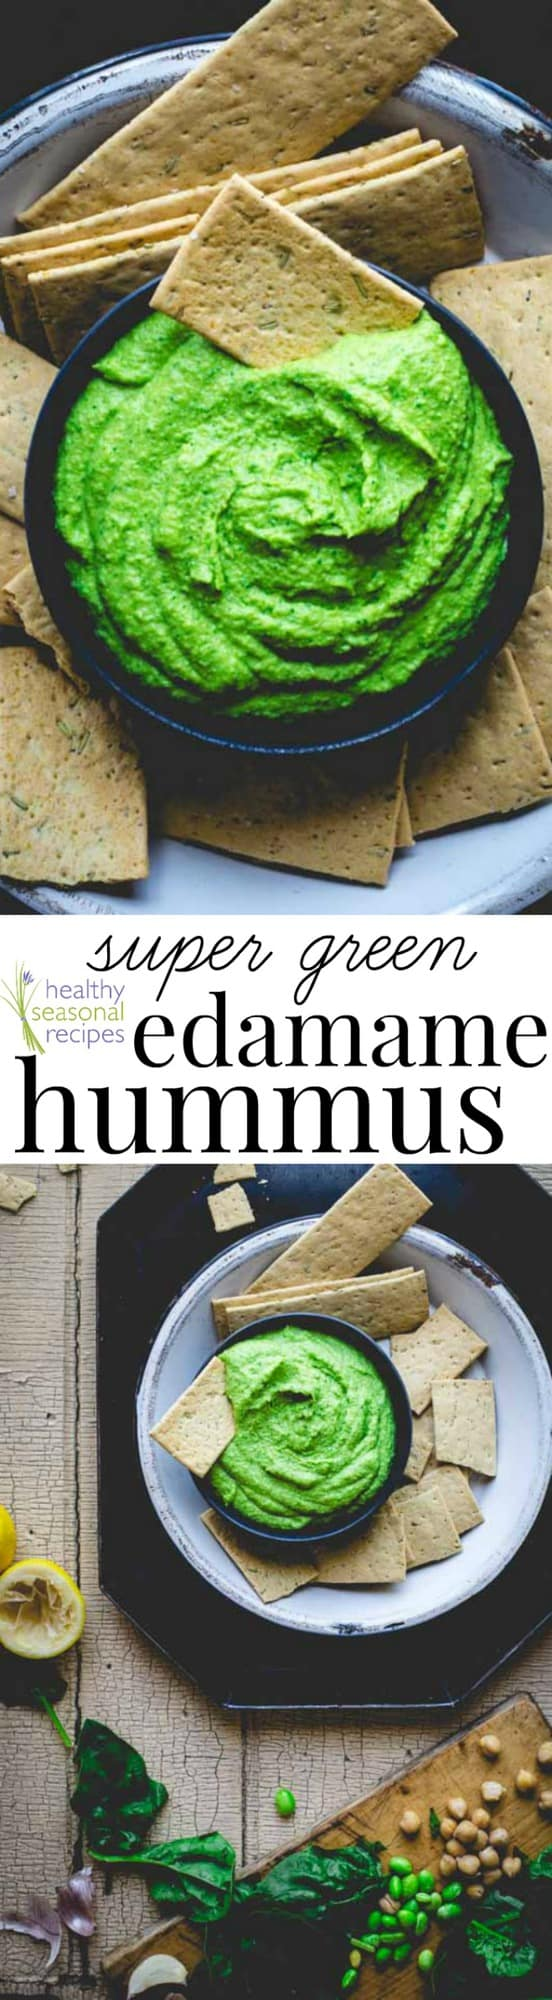 green hummus photo collage with text